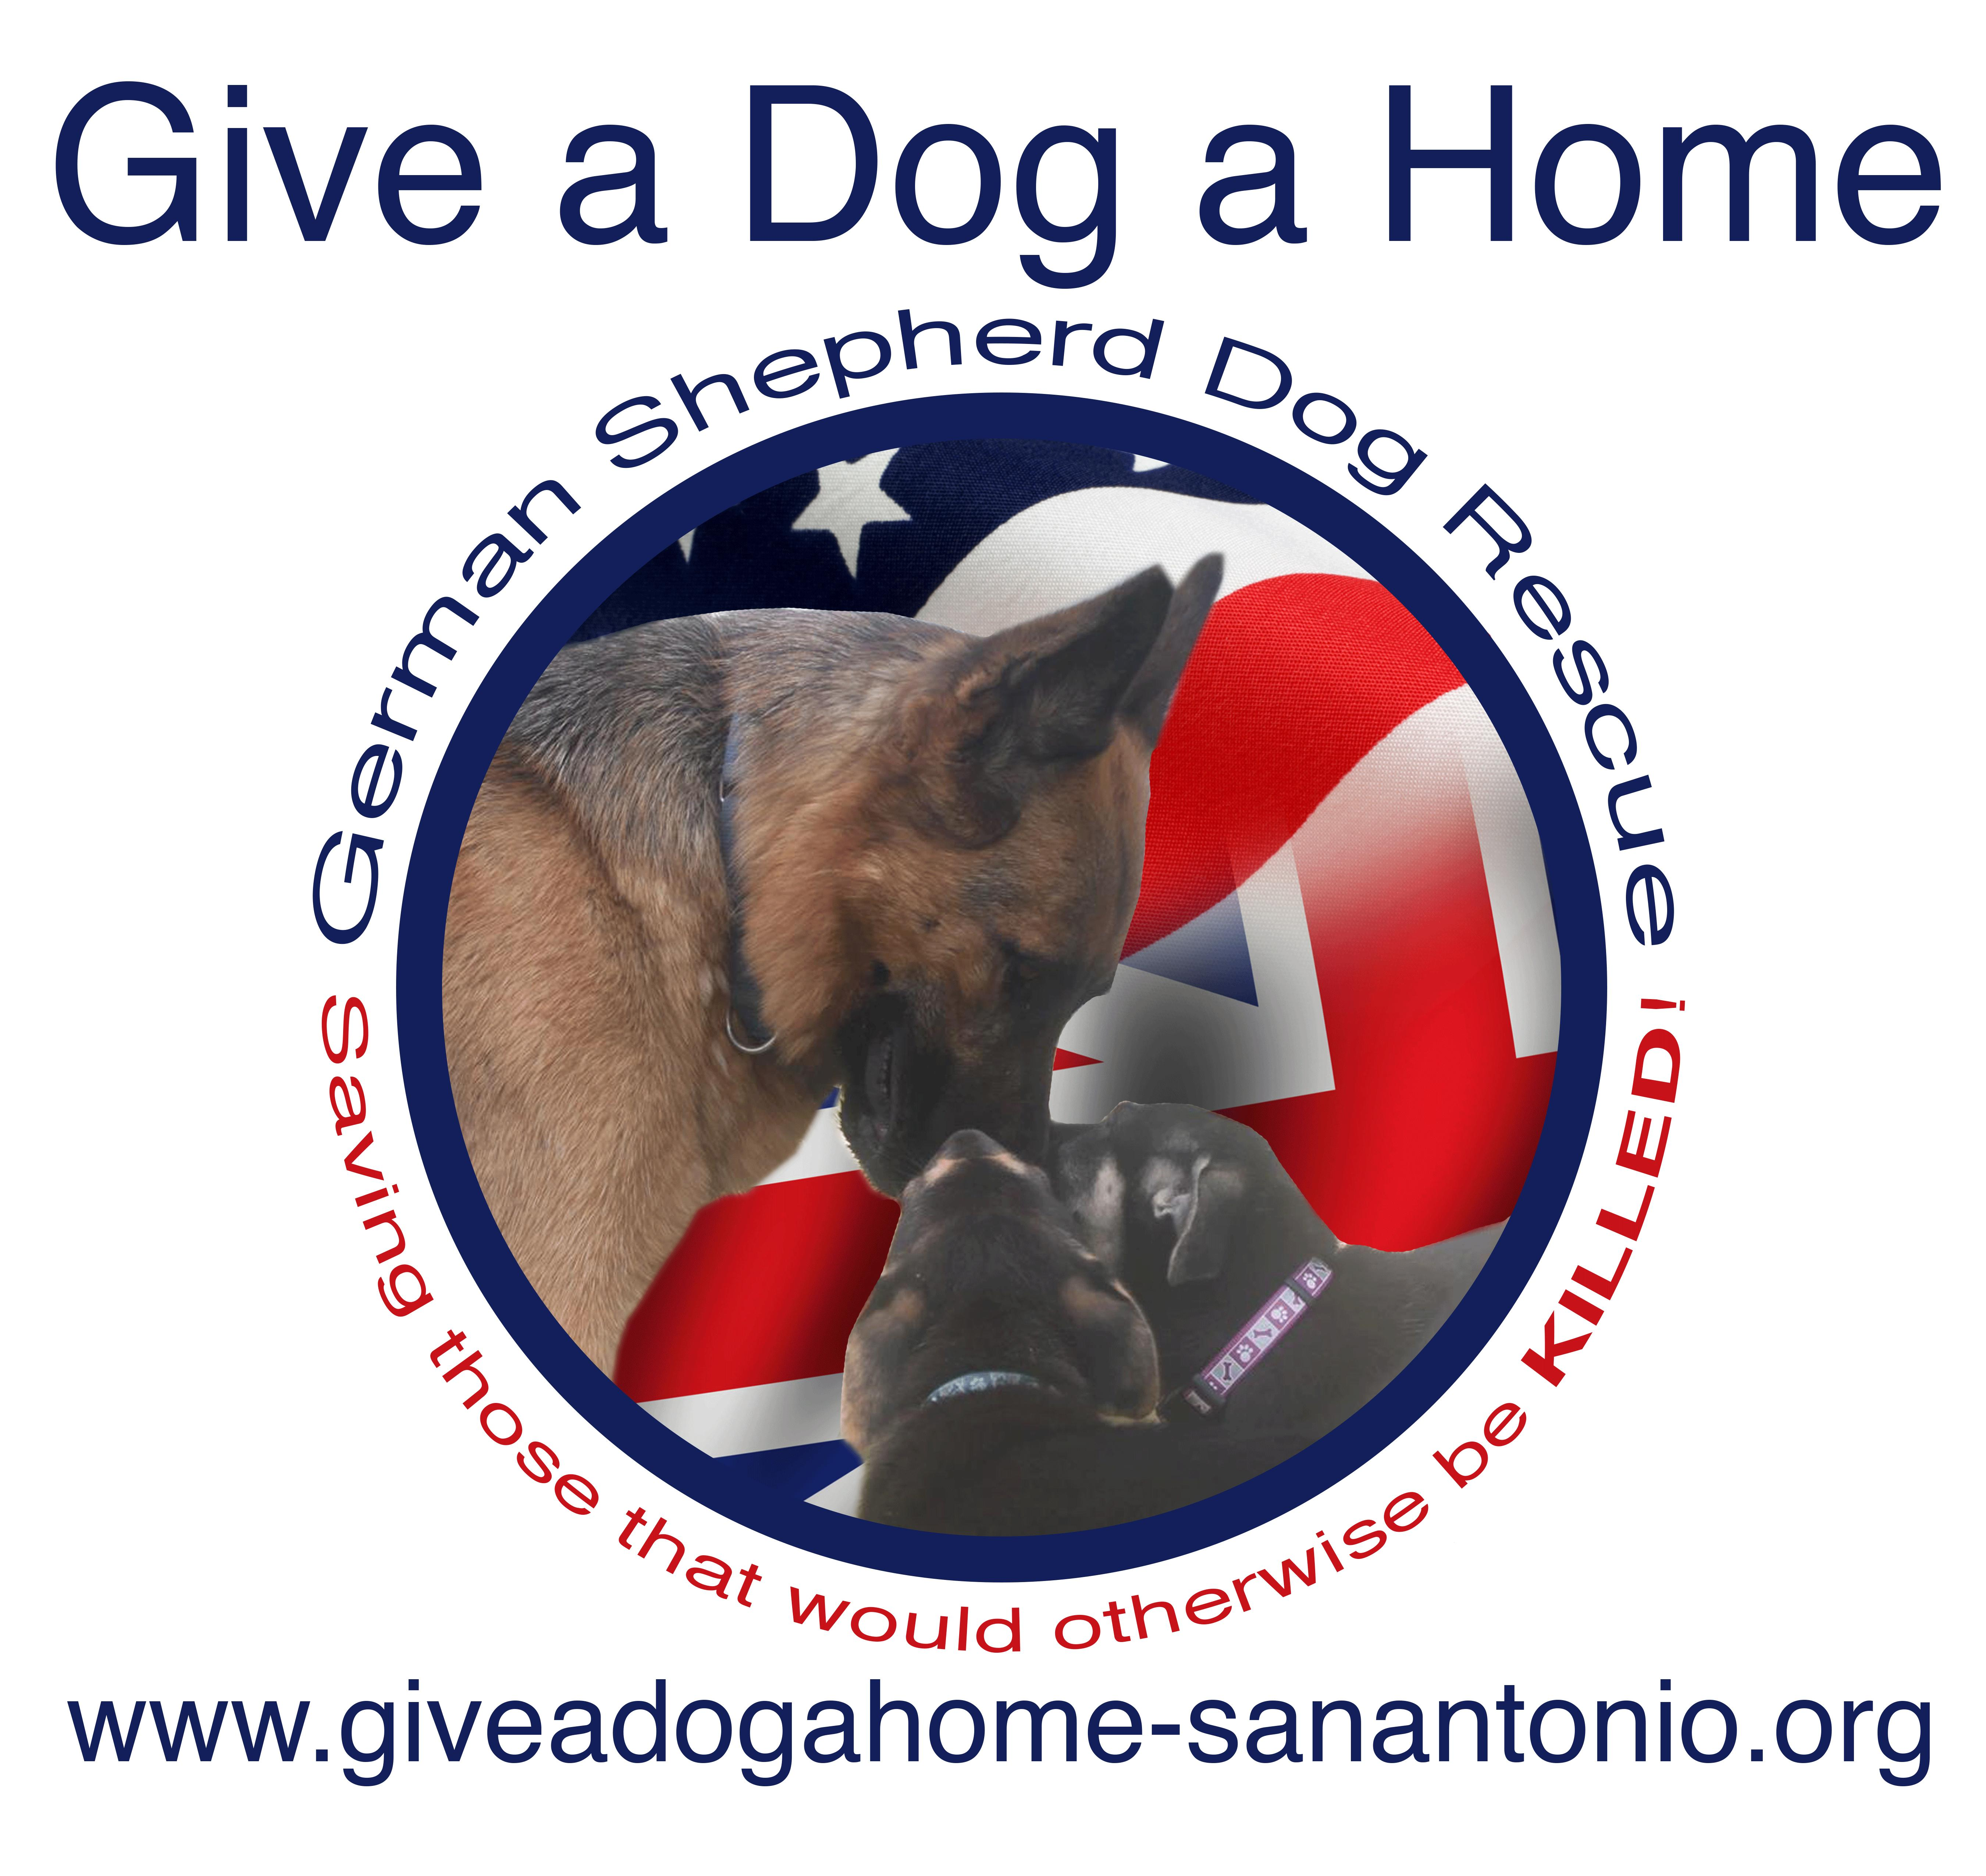 Give a Dog a Home, German Shepherd Dog Rescue